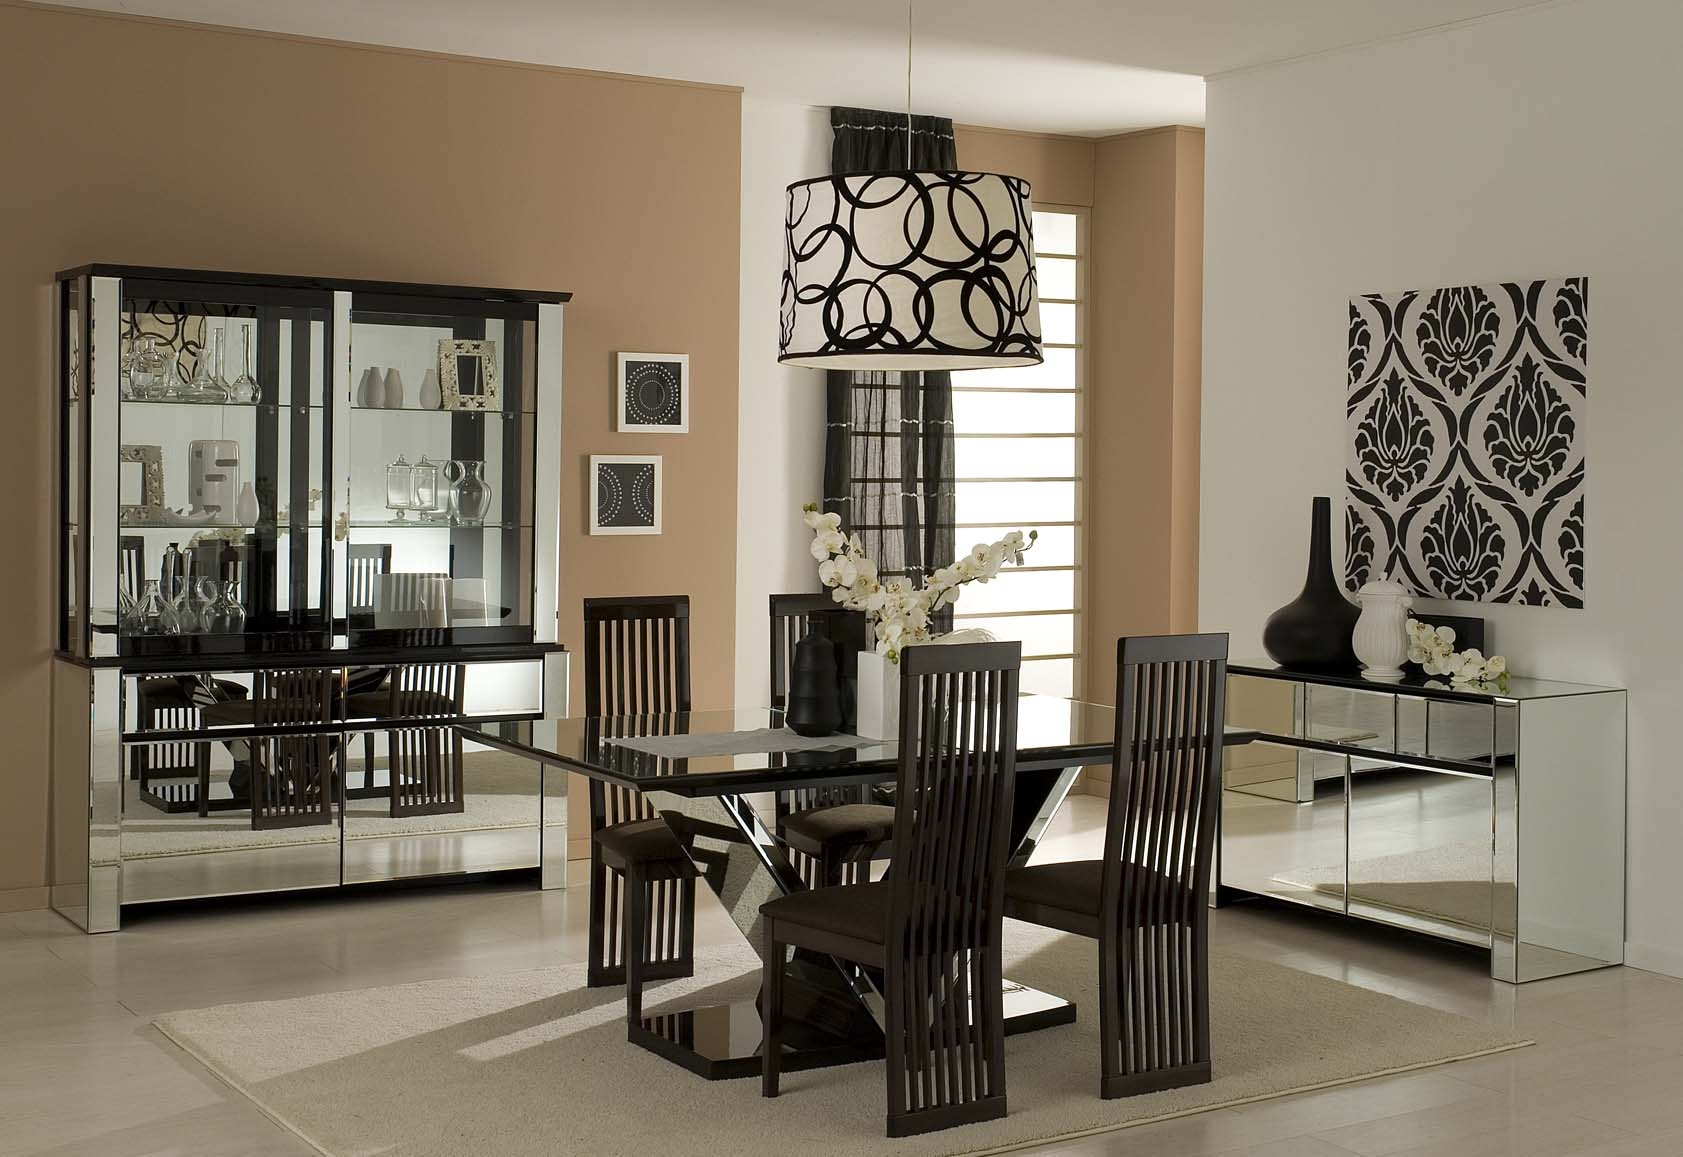 Dining room decorating photos Photo - 1